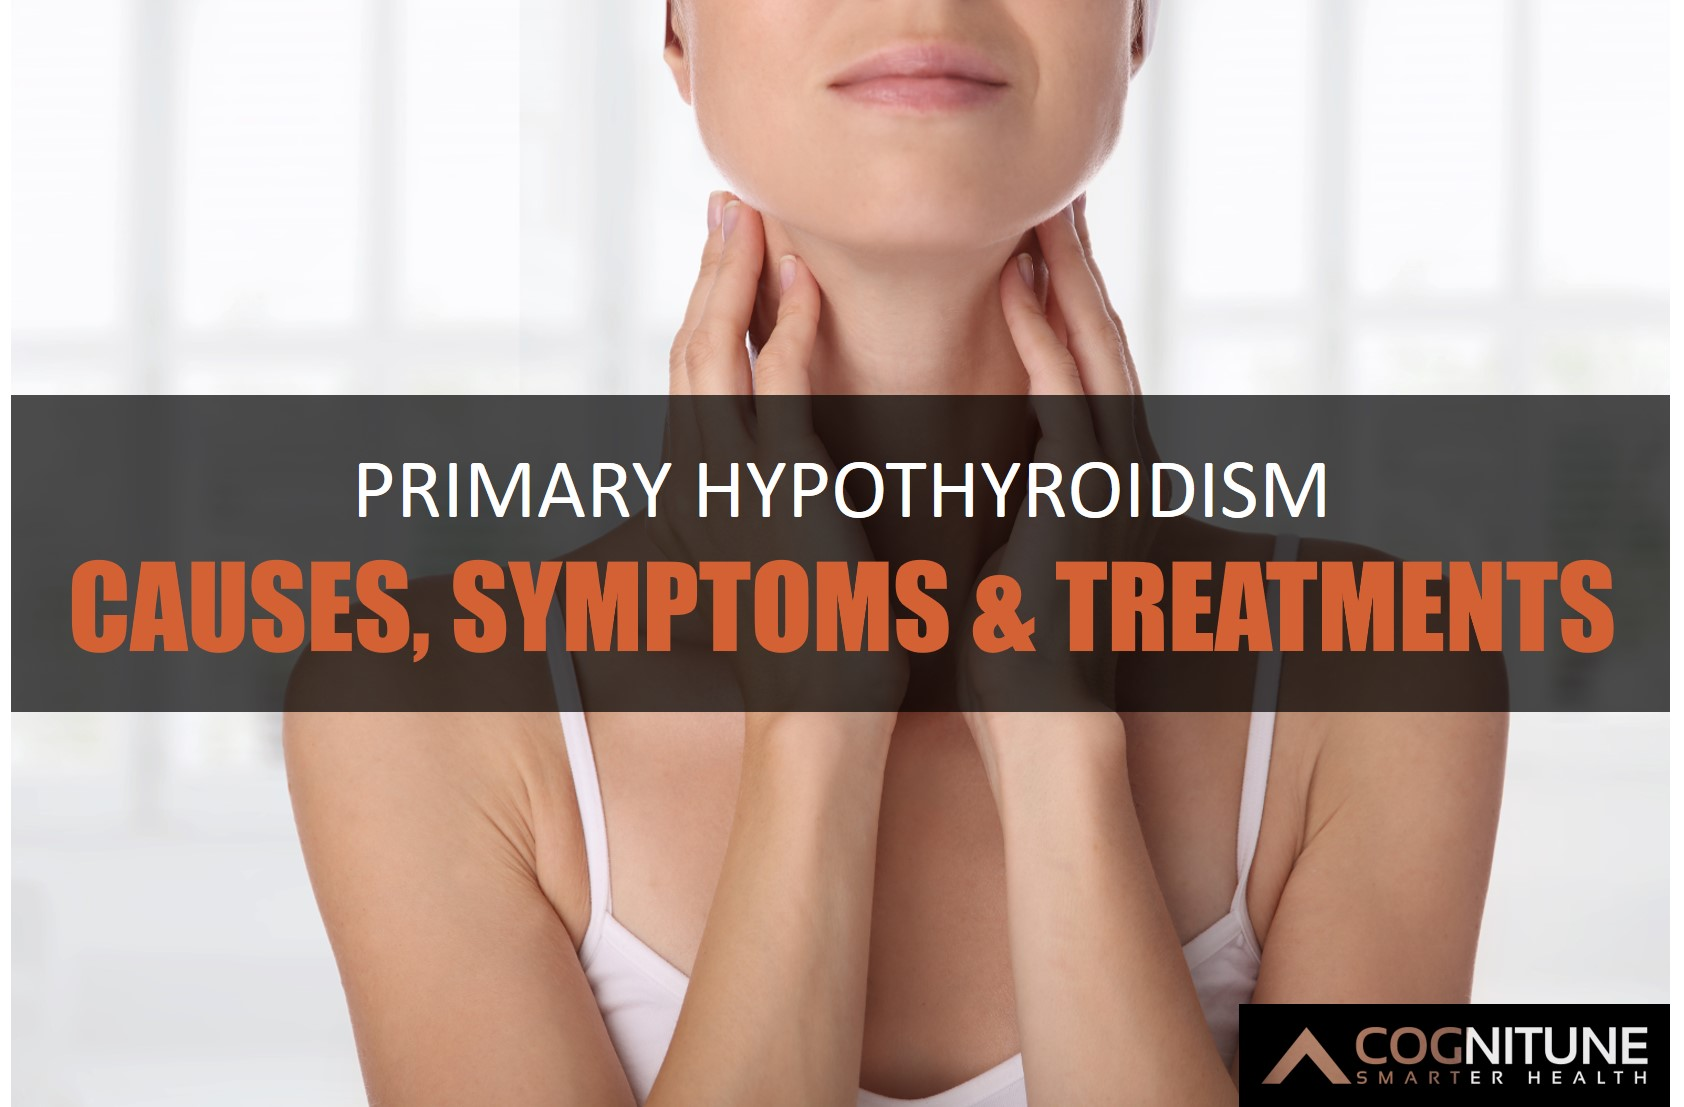 Causes, Symptoms, and Treatments for Primary Hypothyroidism